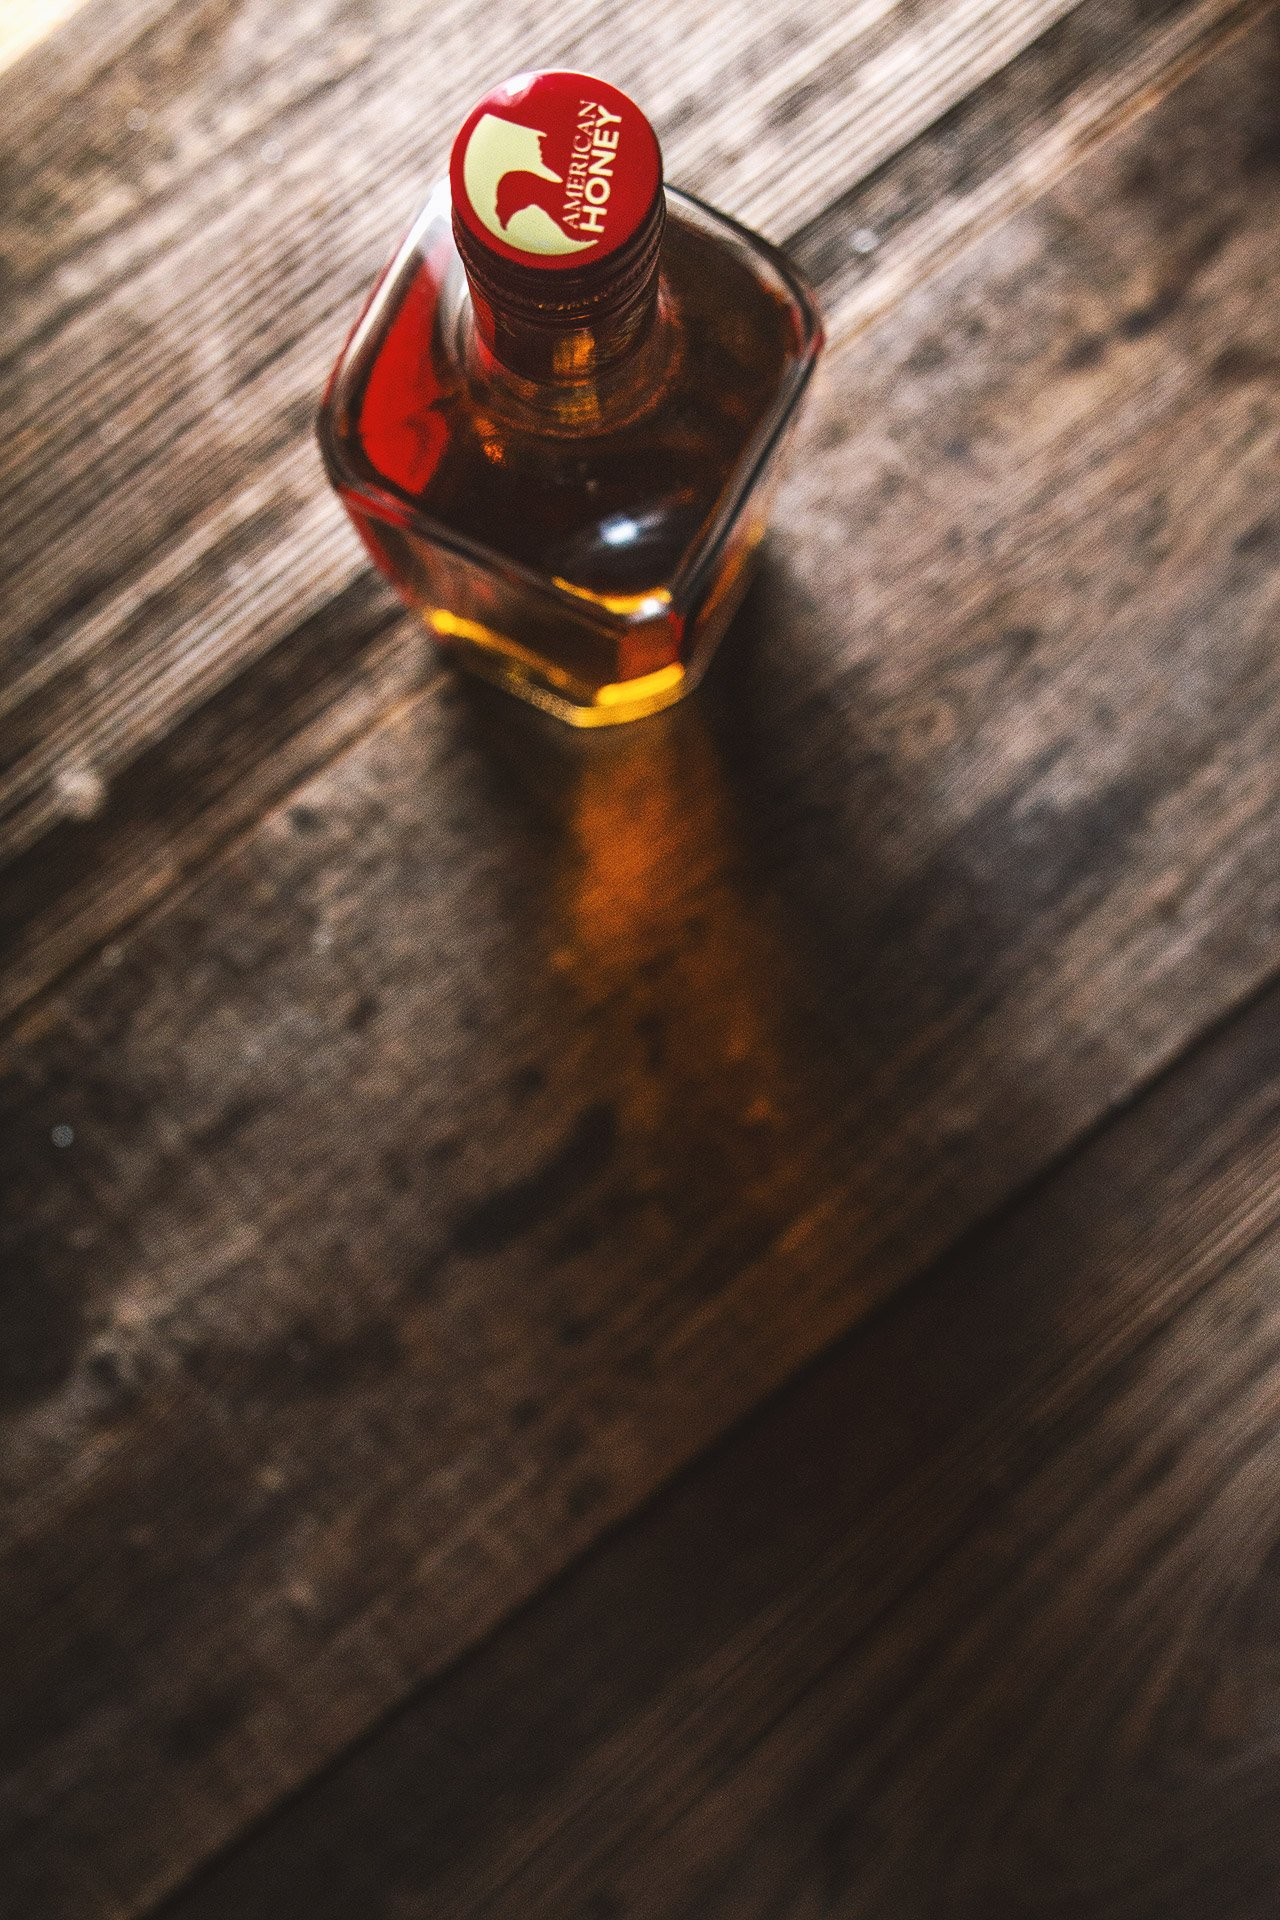 American Honey Sting | HonestlyYUM